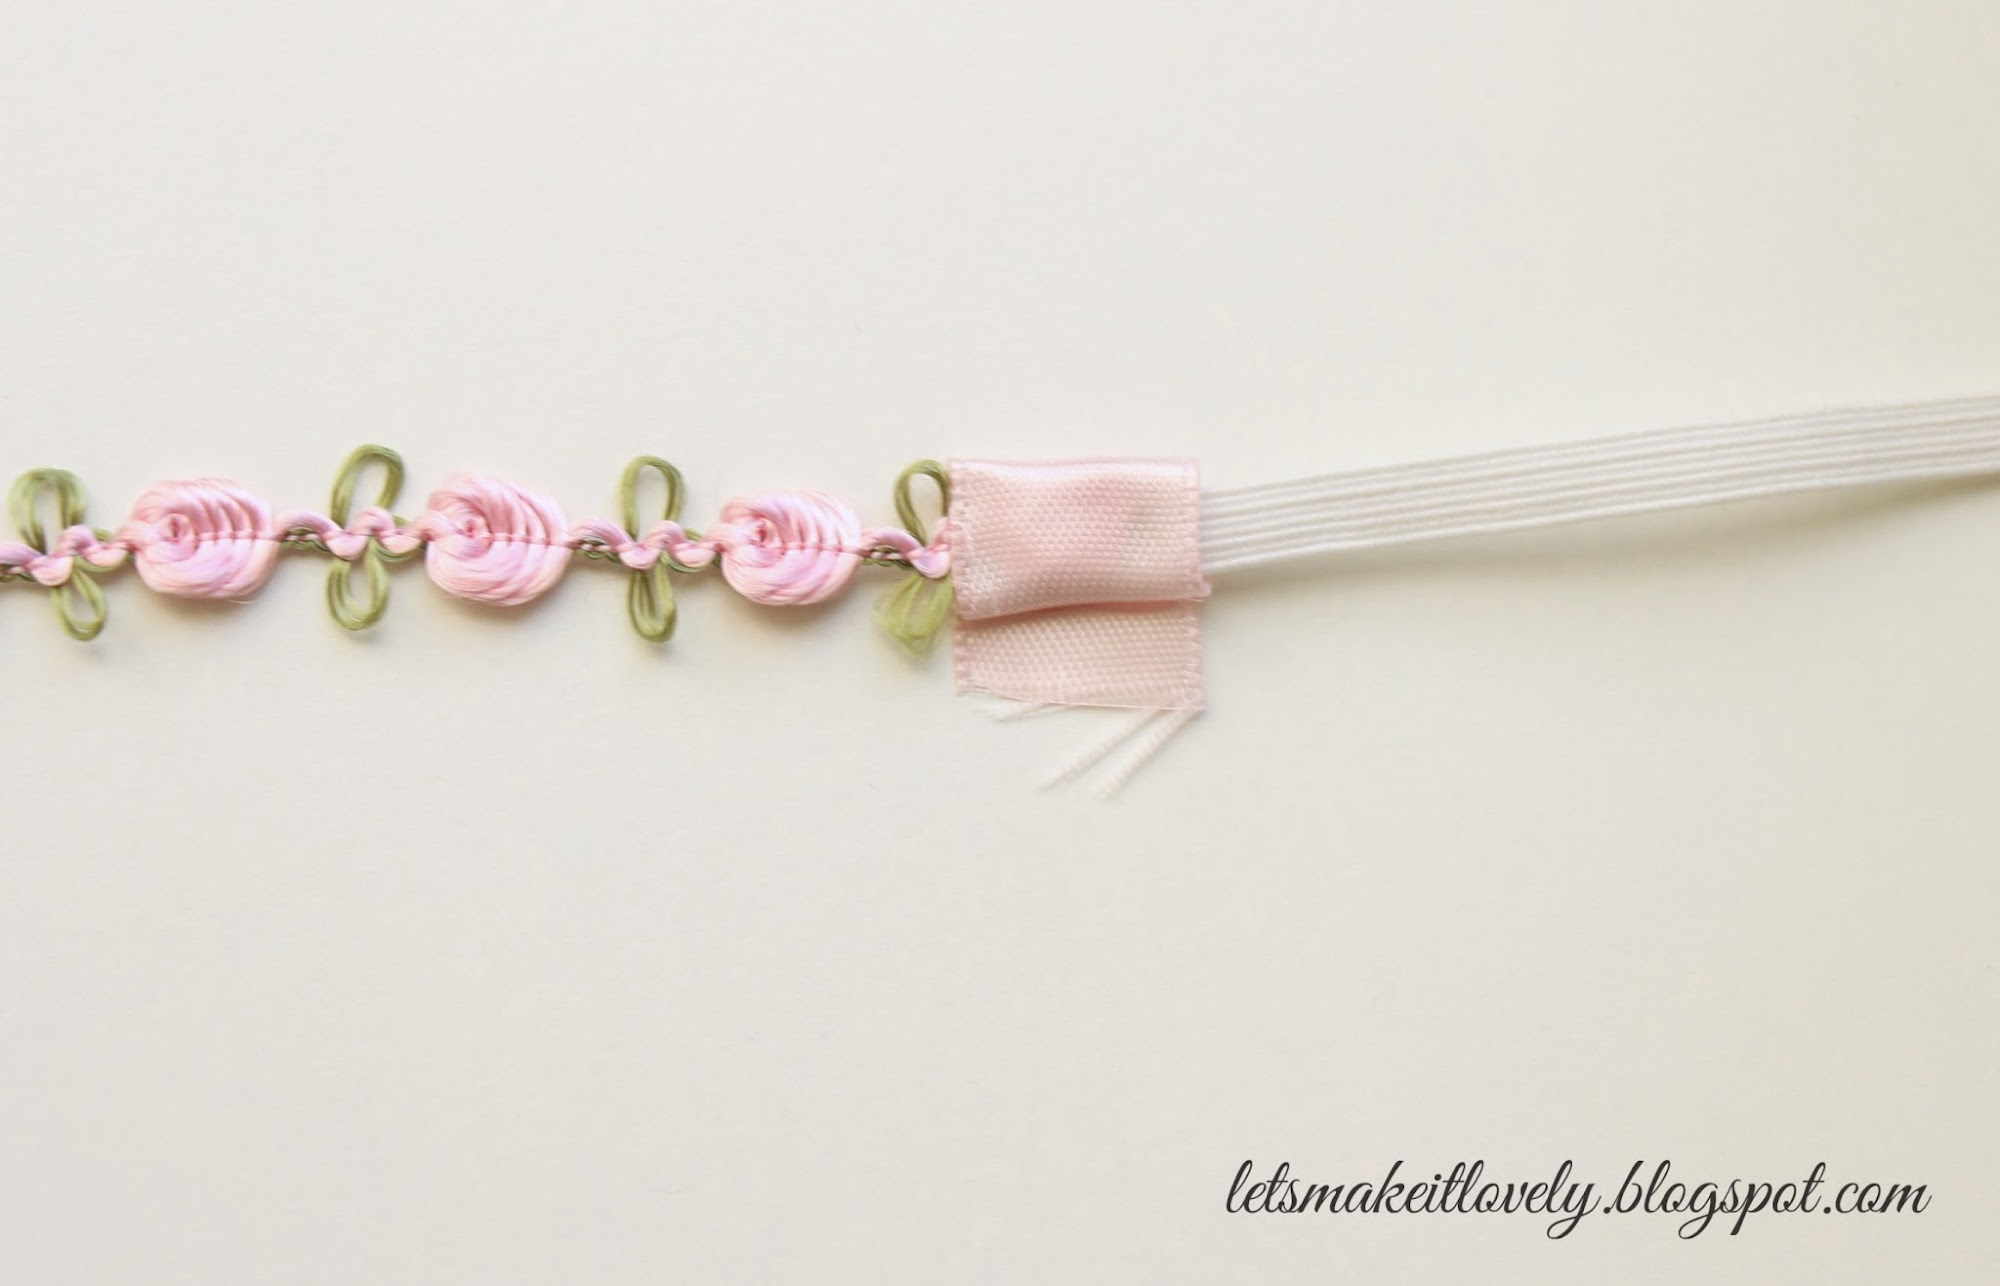 DIY Baby Head Bands. DIY Newborn Head Bands. DIY Simple Hair Accessories.Handmade gift ideas for Baby Girl. Handmade Baby Shower gift ideas.